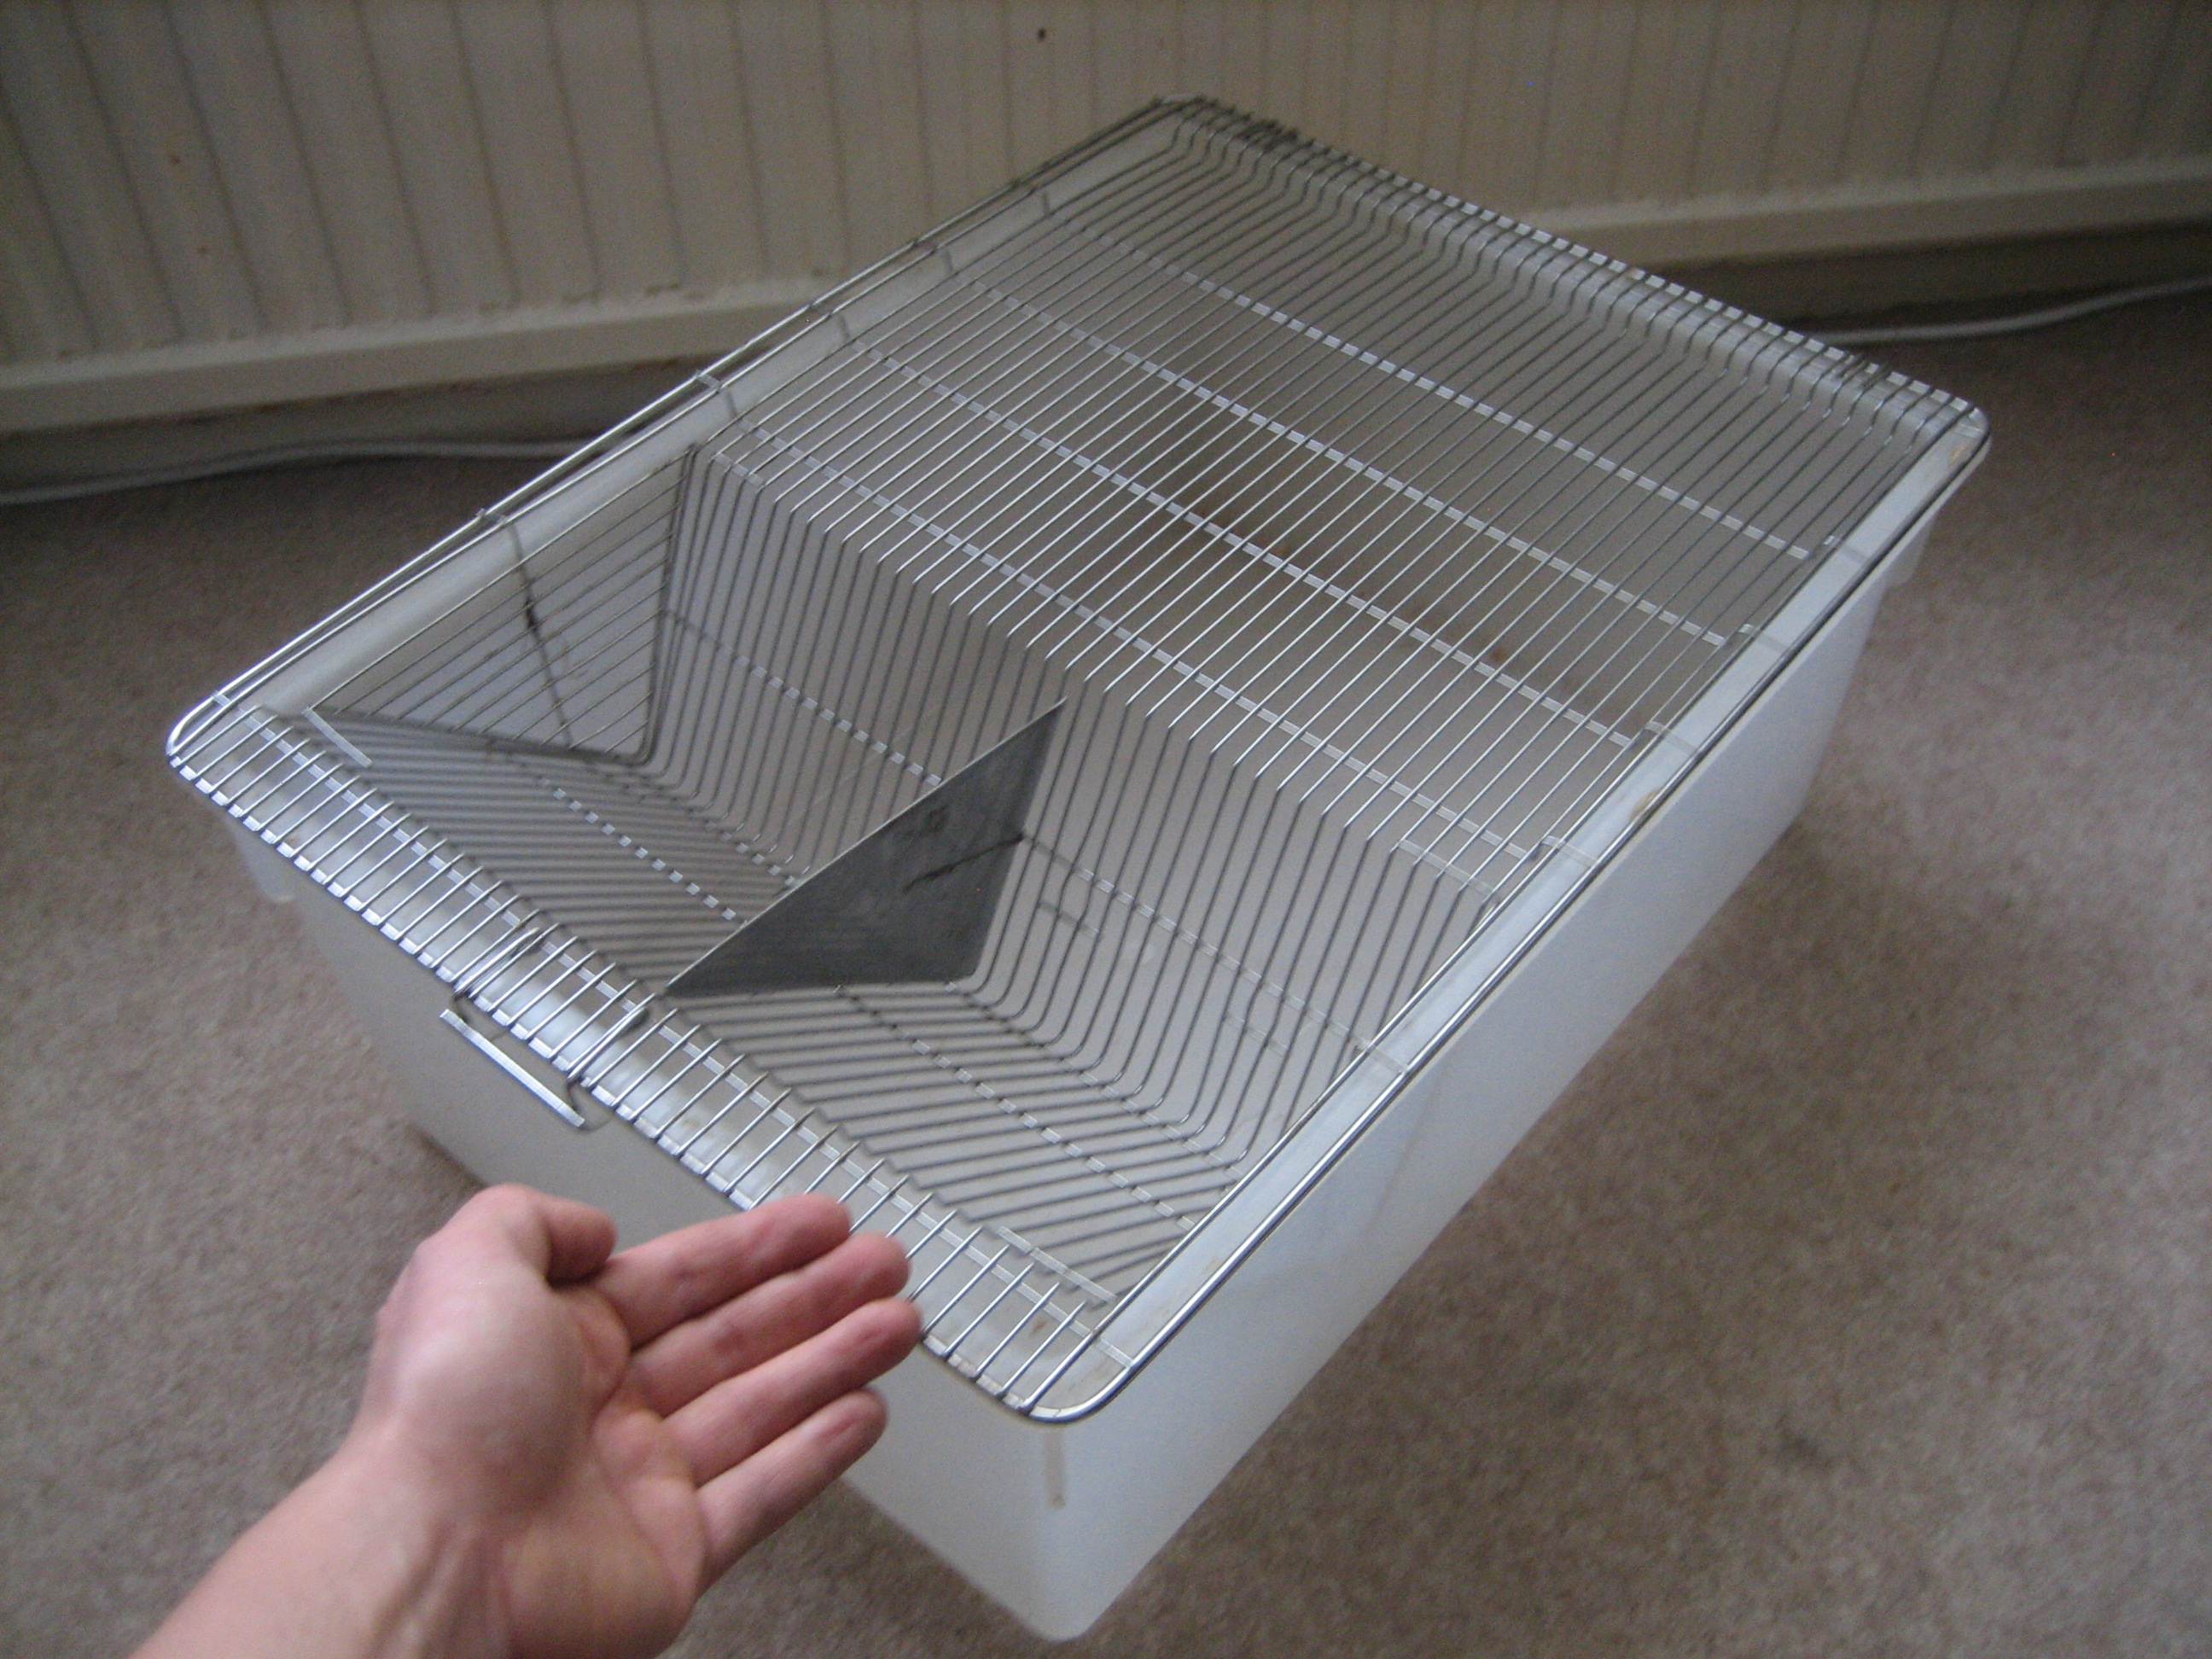 FOR SALE: Lucky Reptile rodent cages X 7-rodent-cages-001.jpg